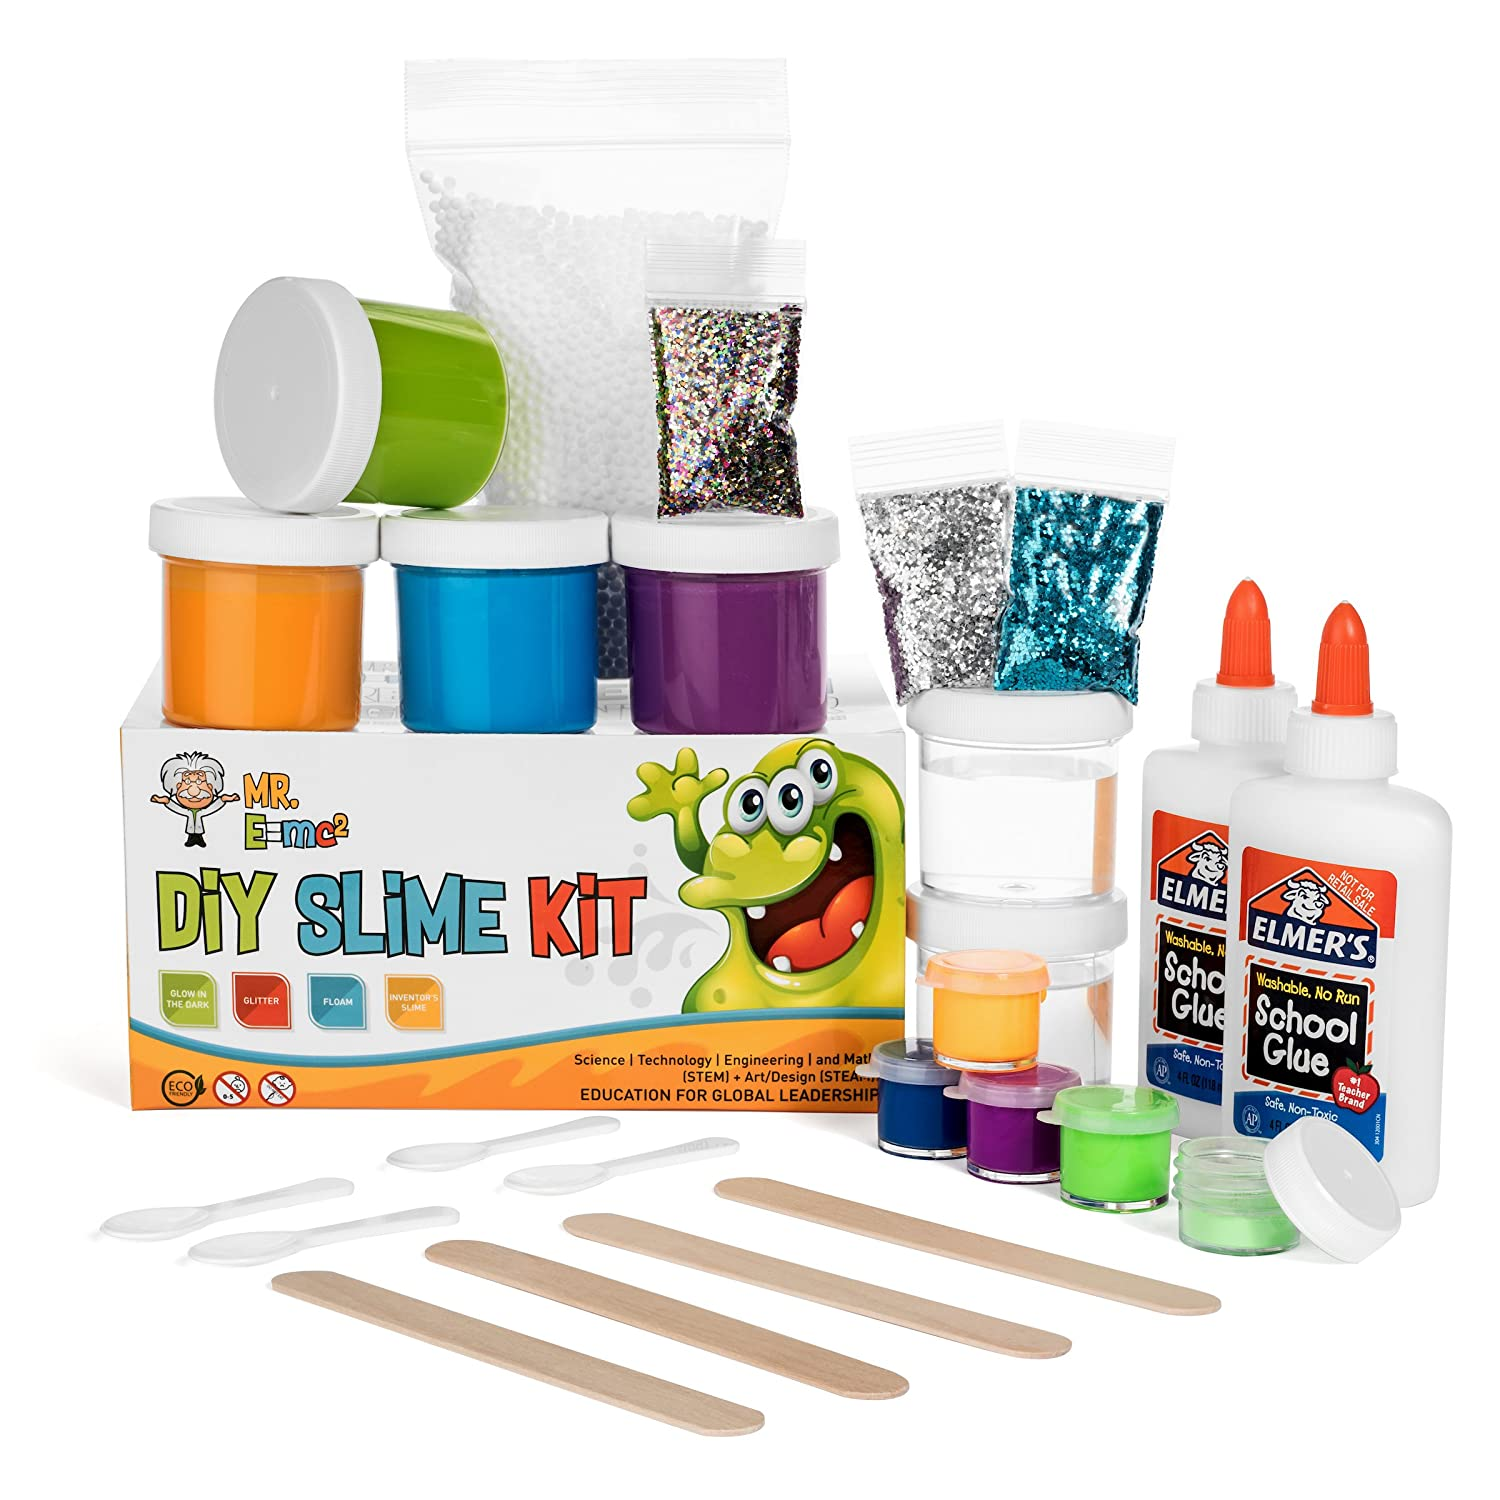 The Ultimate Slime Supplies and Slime Gift Ideas, Slime Recipes, How to make Slime, How to Make Fluffy Slime, Slime Kits, Homemade Slime Recipes, Homemade Gift Ideas, Gifts for Kids, #Slime #Slimerecipes #giftideas